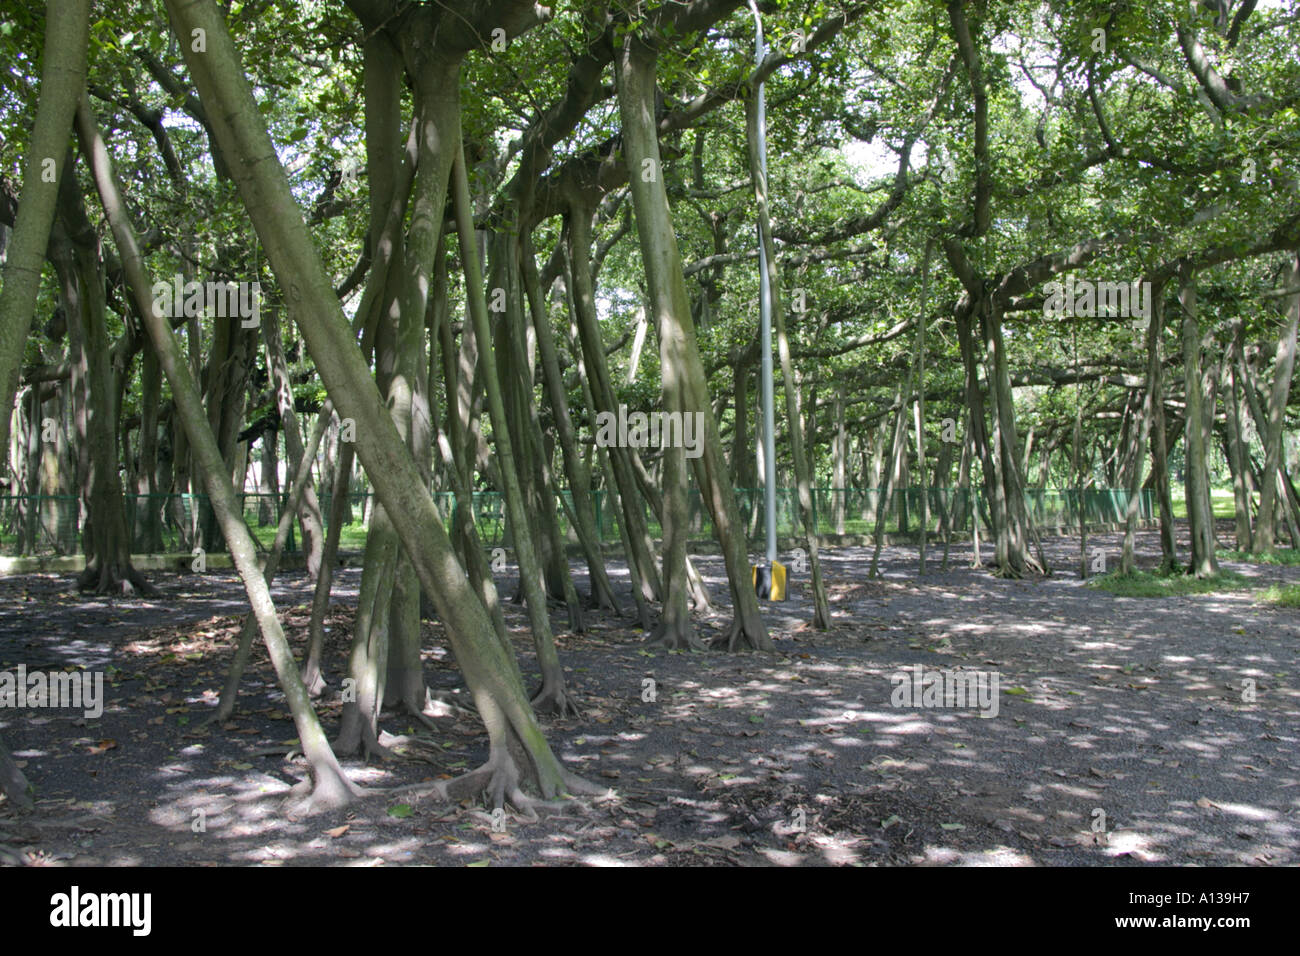 Banyan tree which forms a forest by aerial roots in the botanical garden, Kolkata, India - Stock Image